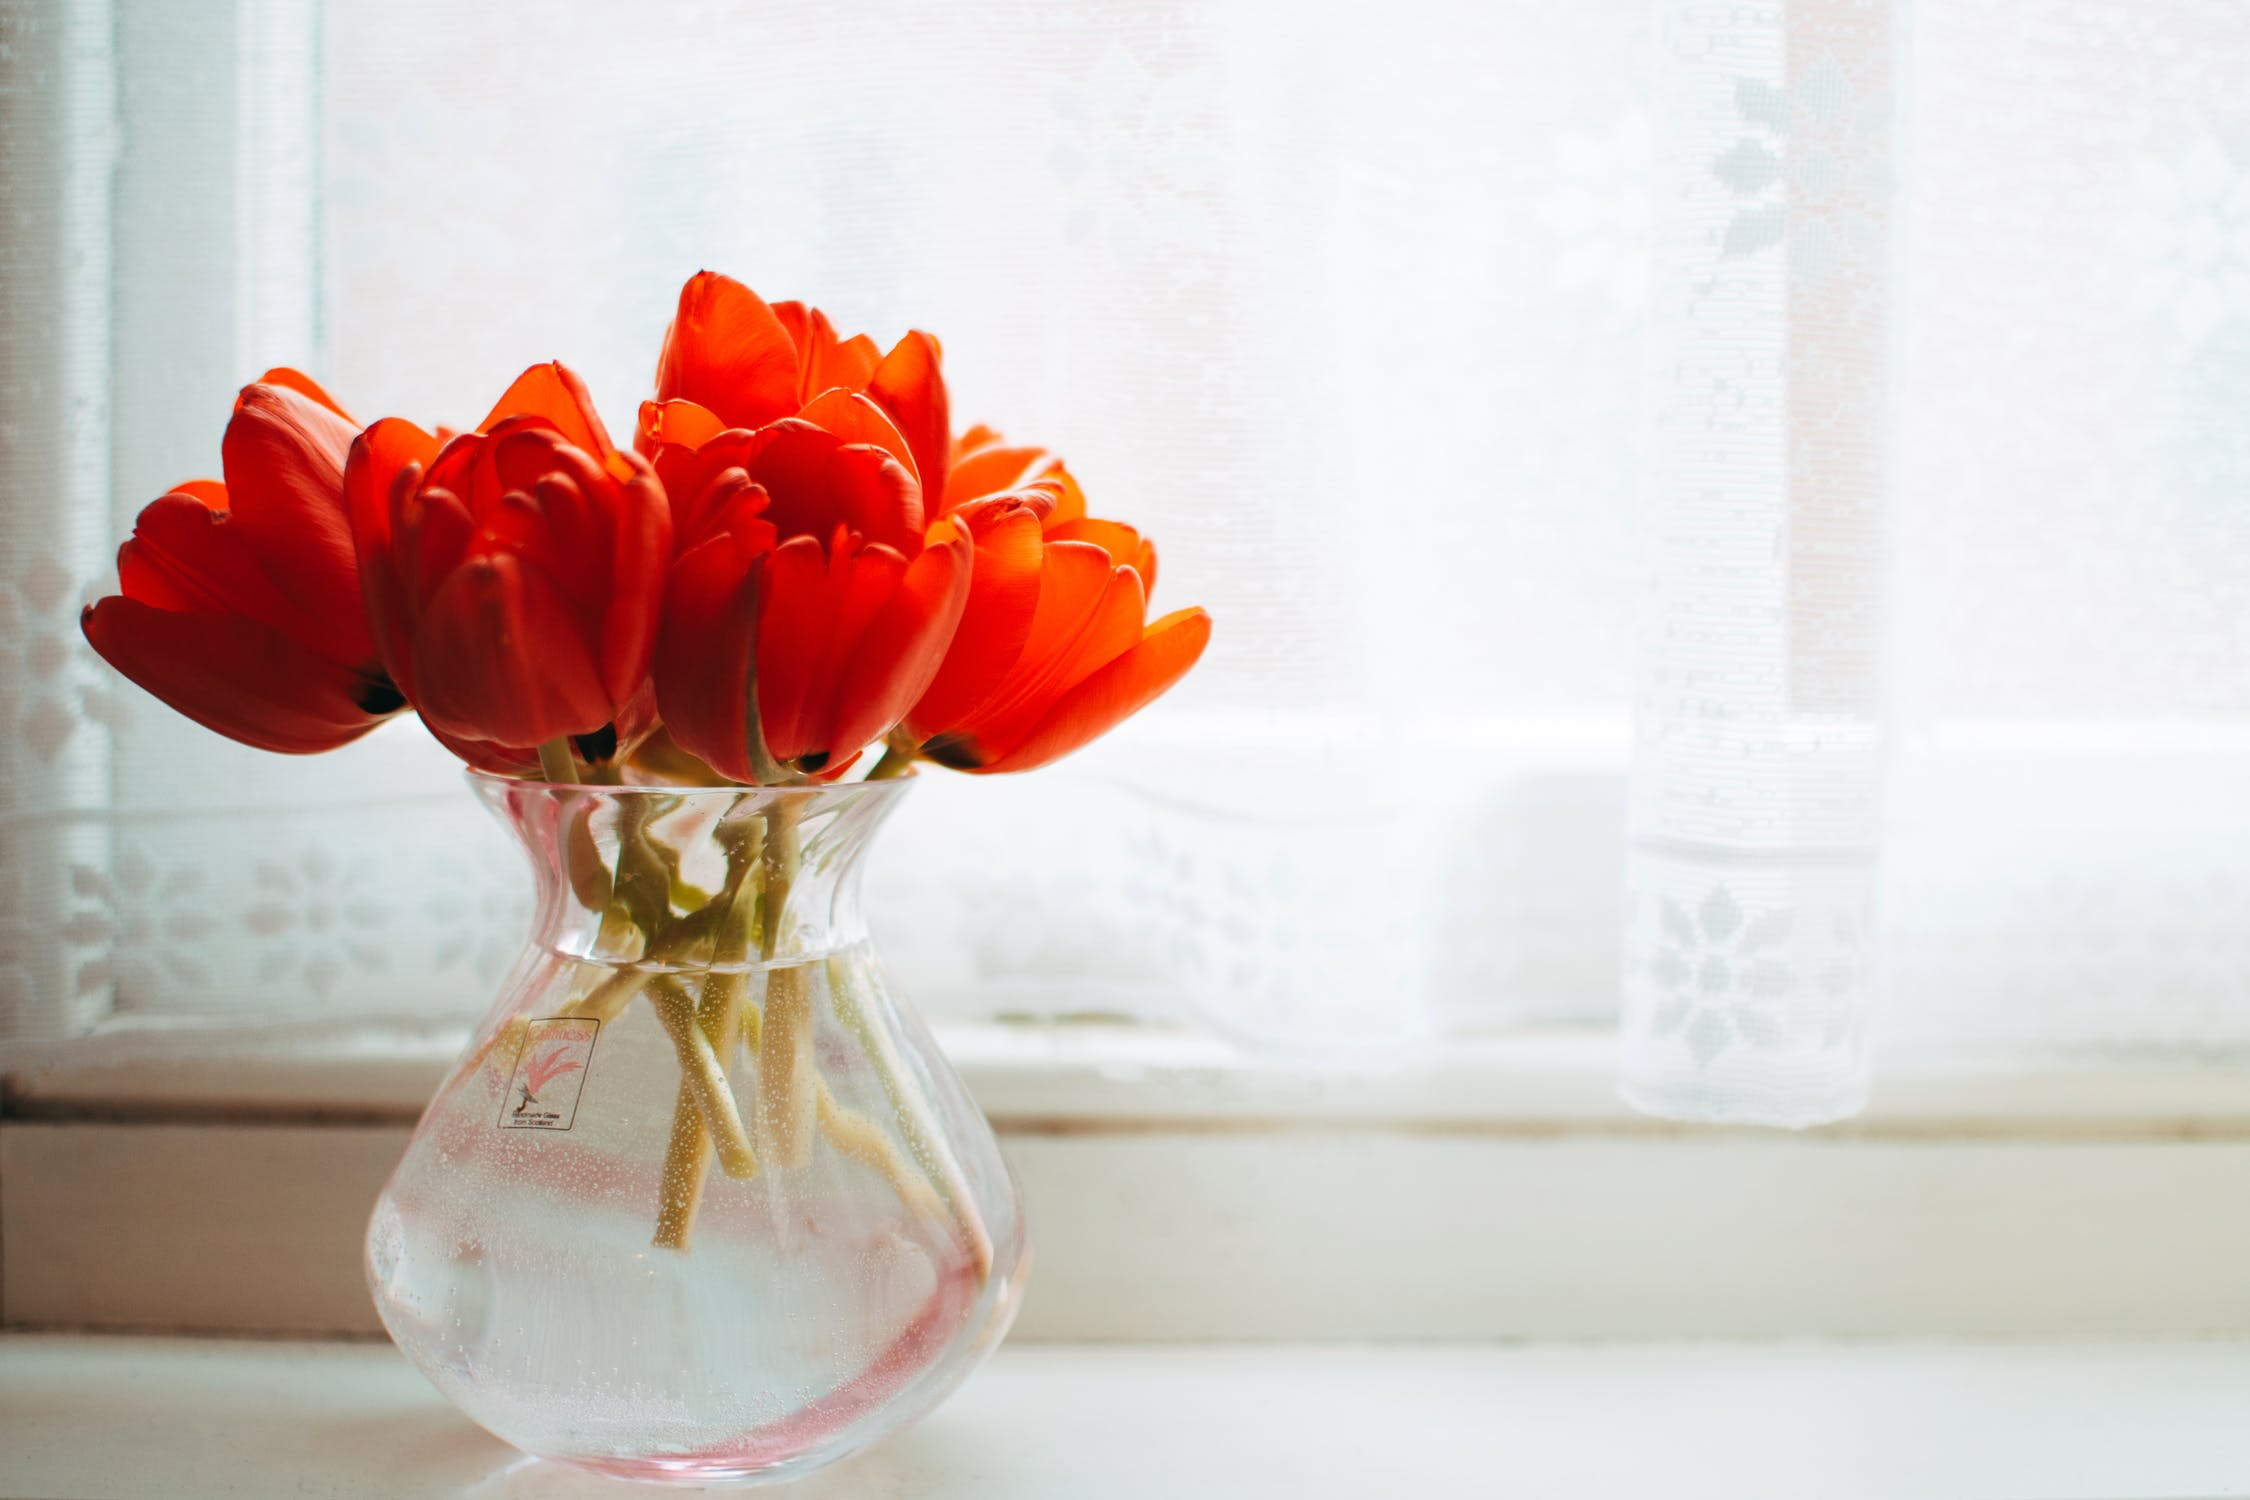 red flowers in vase on windowsill